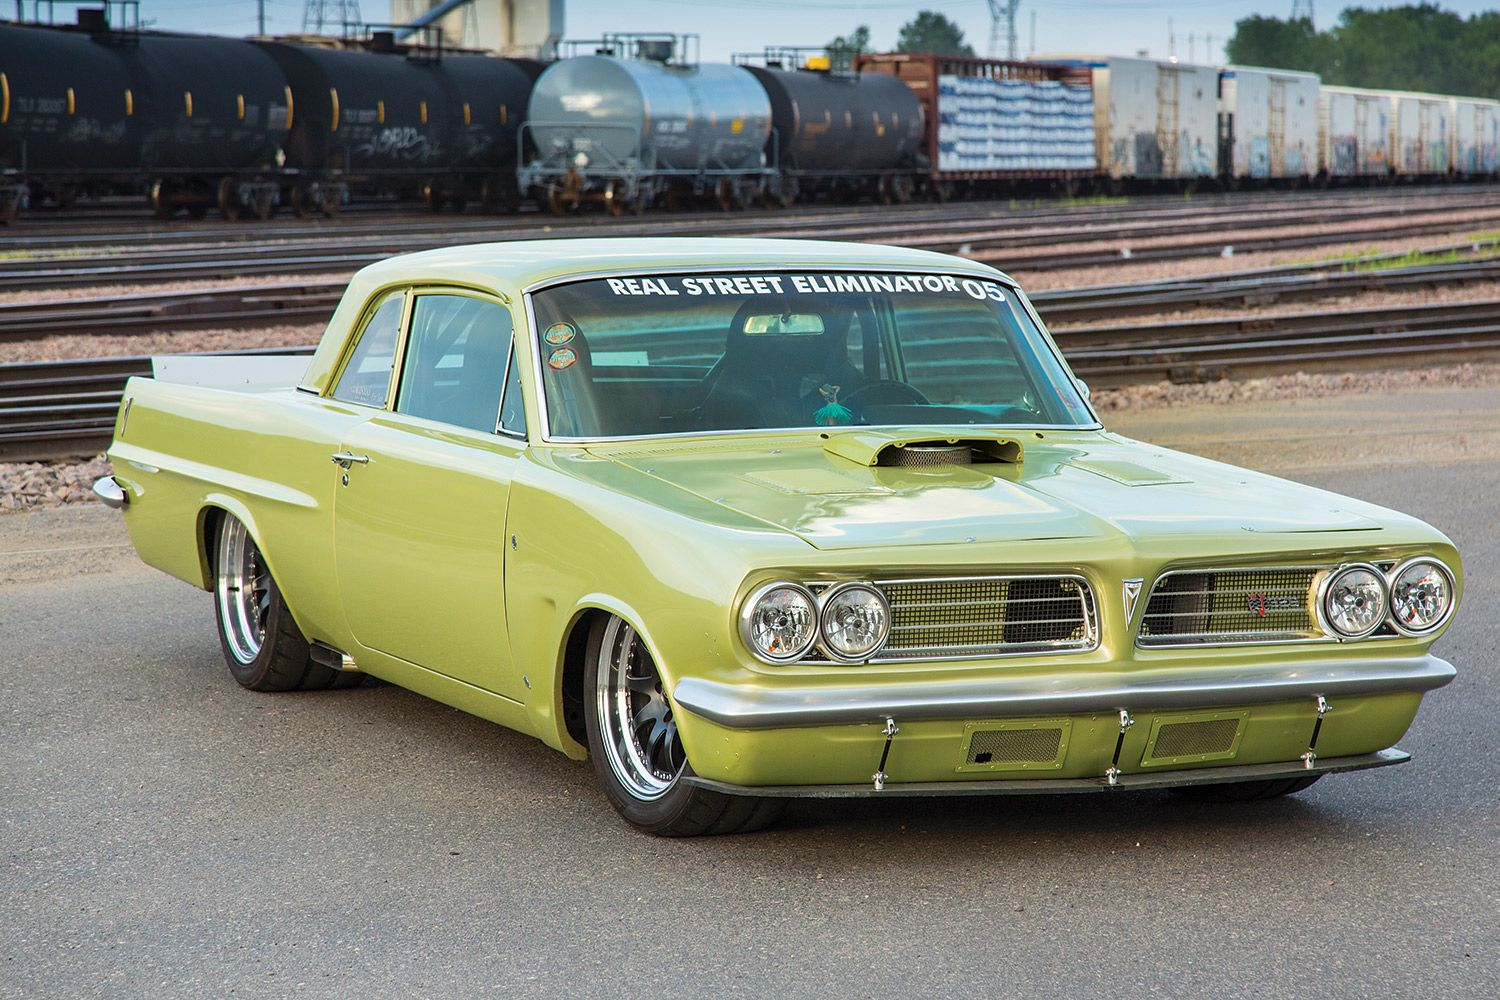 1963 Pontiac LeMans, rarely see these anymore, especially this ...